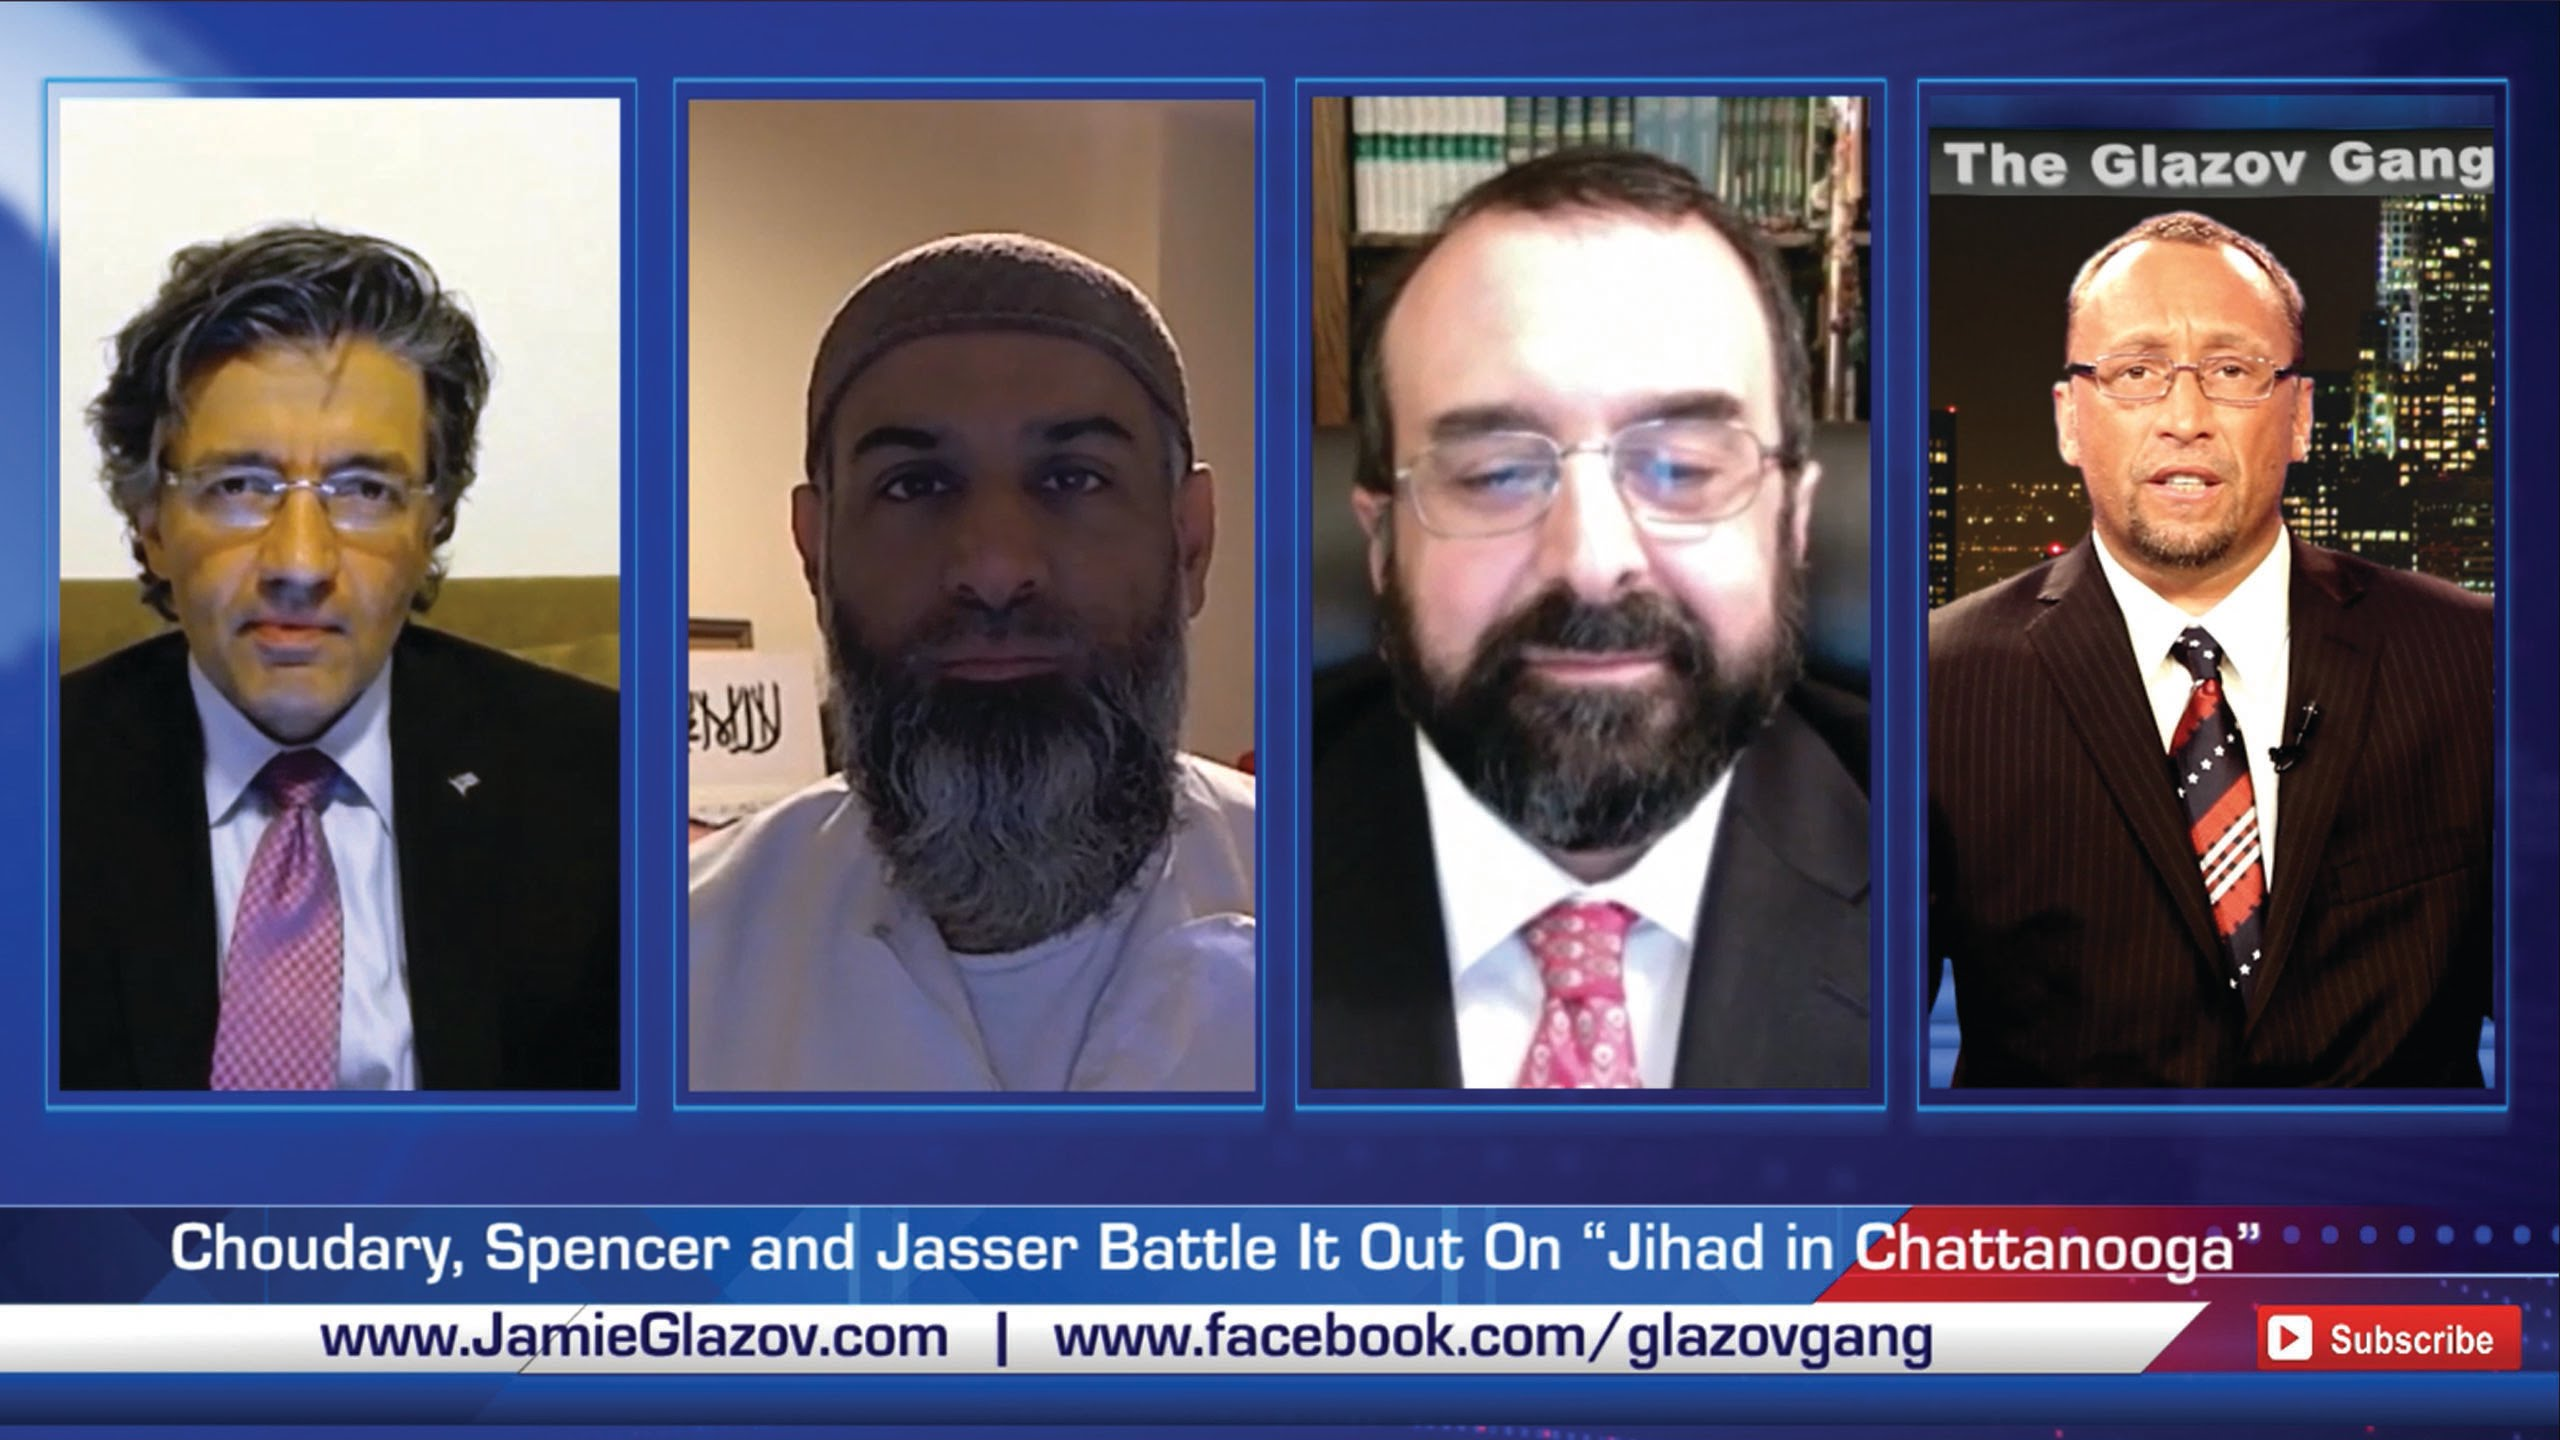 "Choudary, Spencer and Jasser Battle It Out On ""Jihad in Chattanooga"""